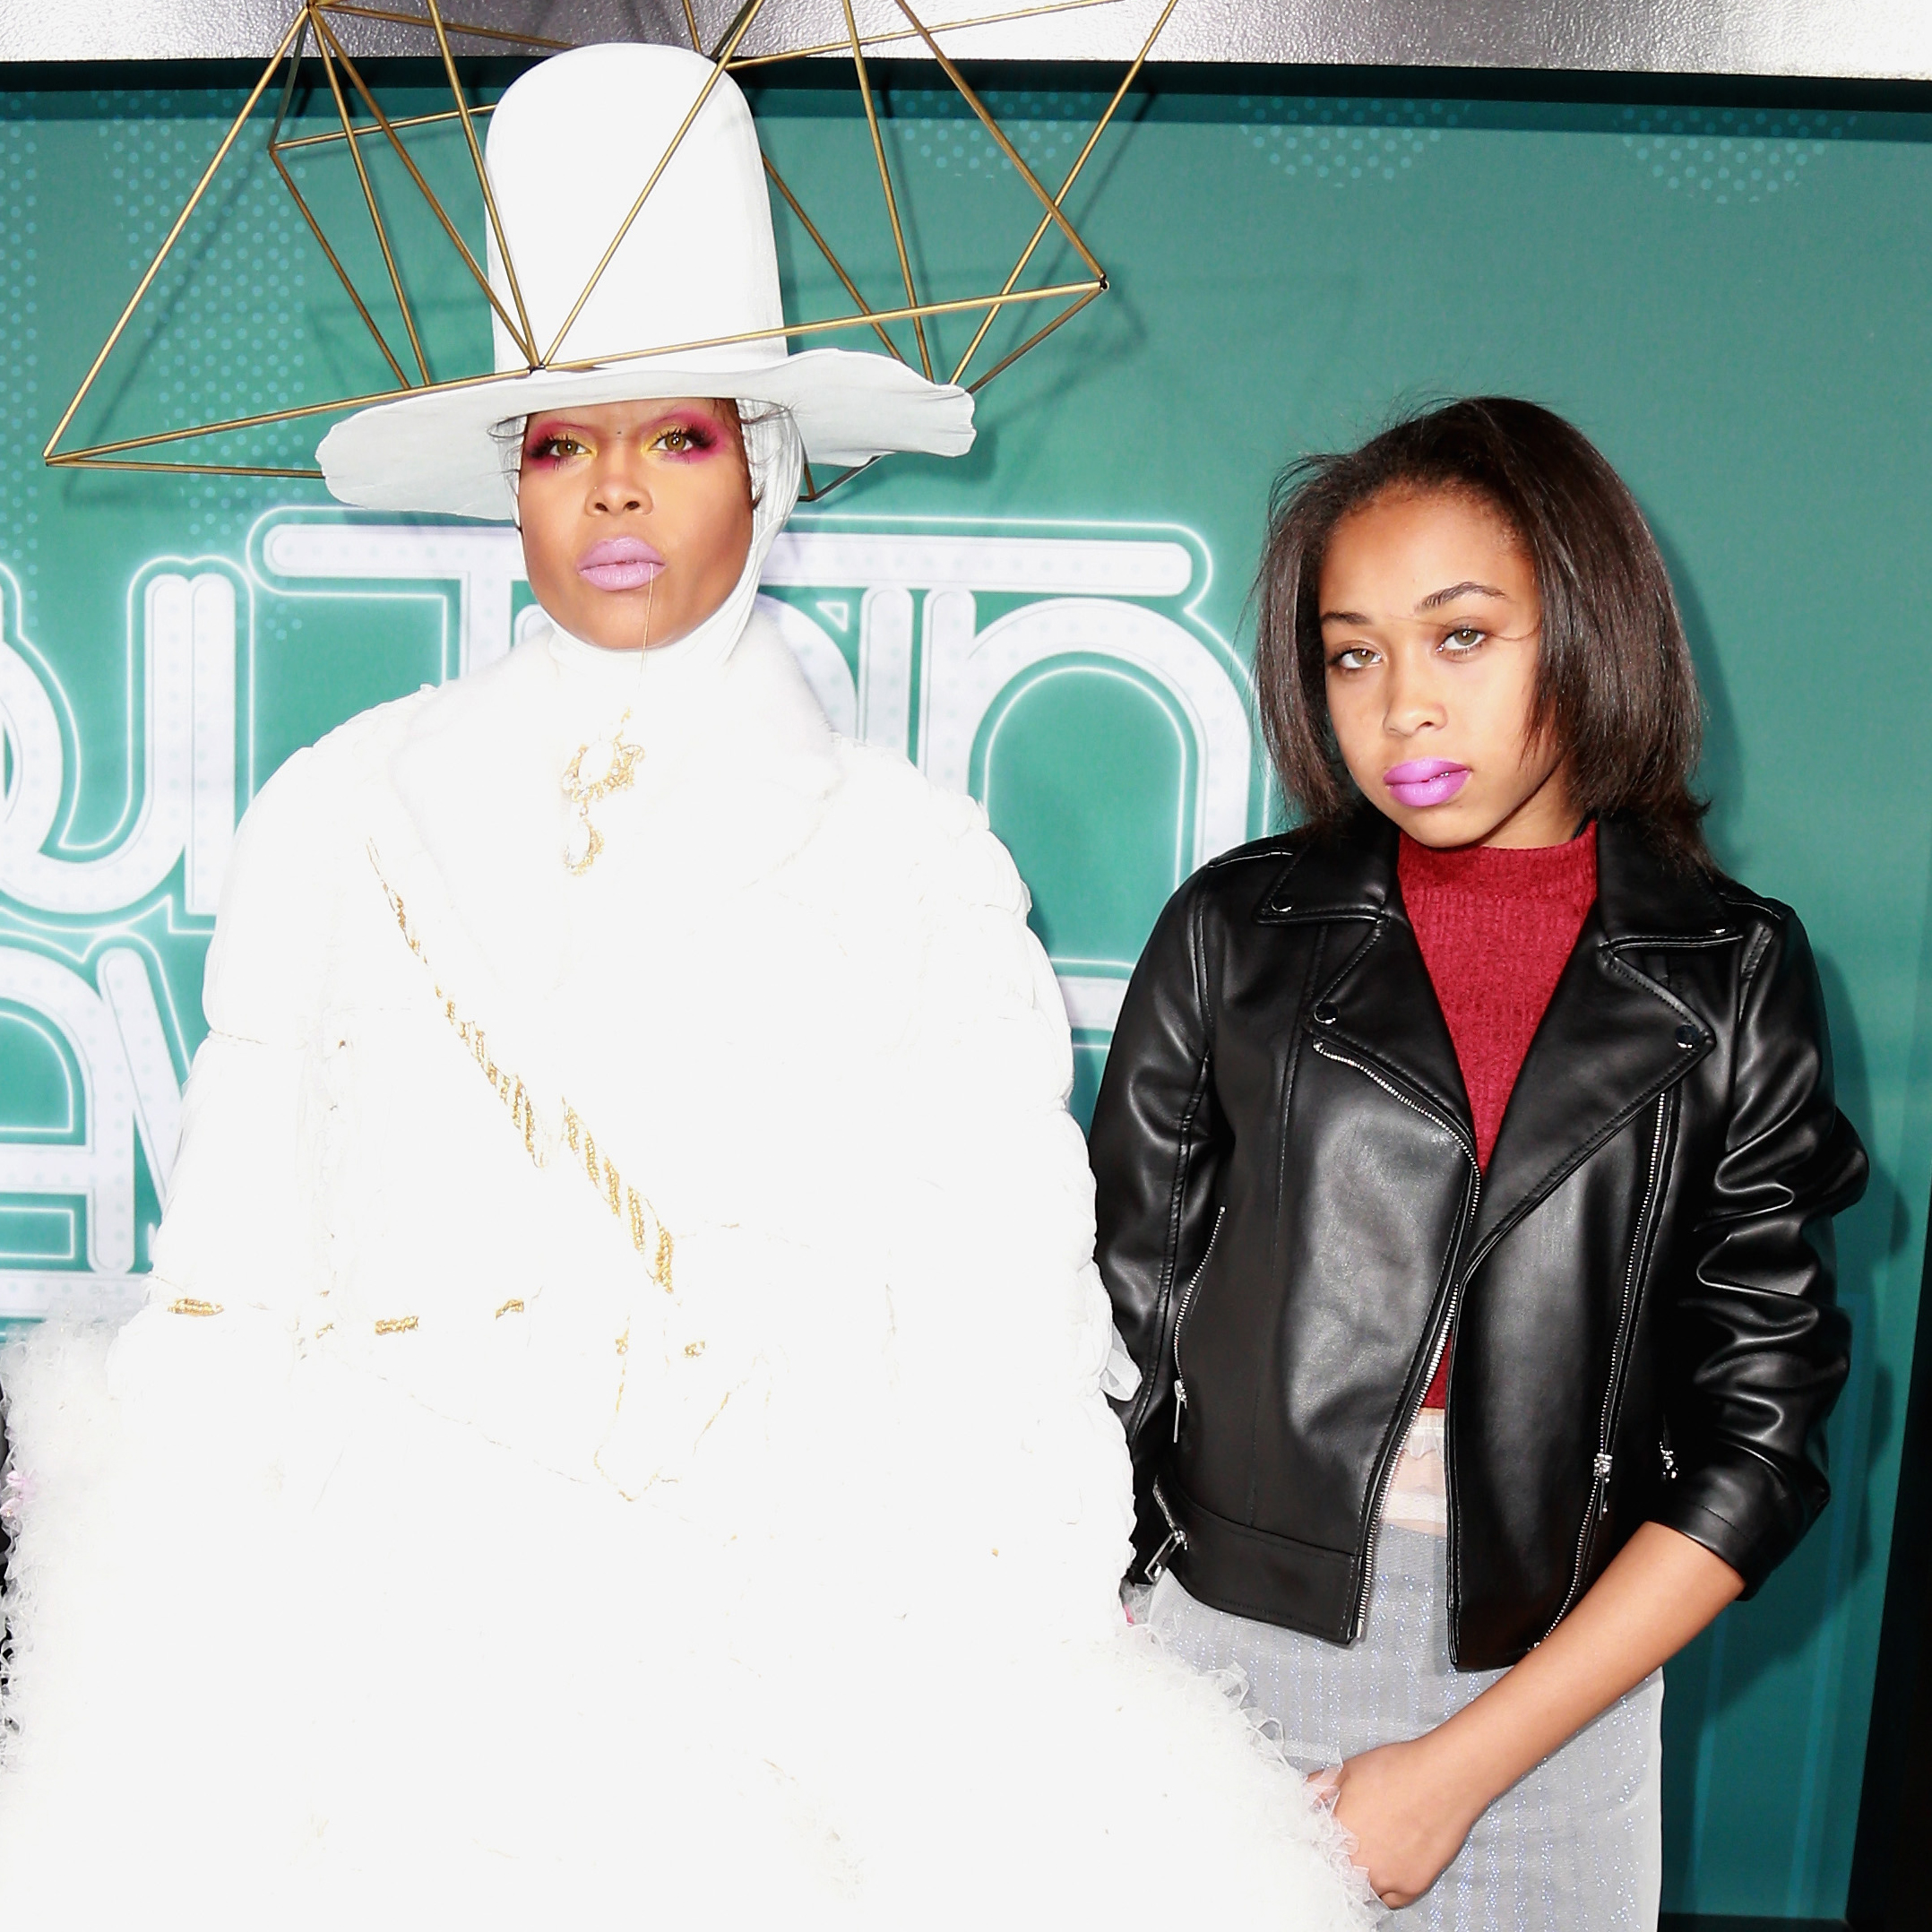 Puma-Sabti-Curry-Erykah-Badu - Singer Erykah Badu and rapper The D.O.C. welcomed their daughter, Puma, in 2004. Badu also shares Seven Sirius Benjamin with OutKast's André 3000 and Mars Merkaba Thedford with Jay Electronica .